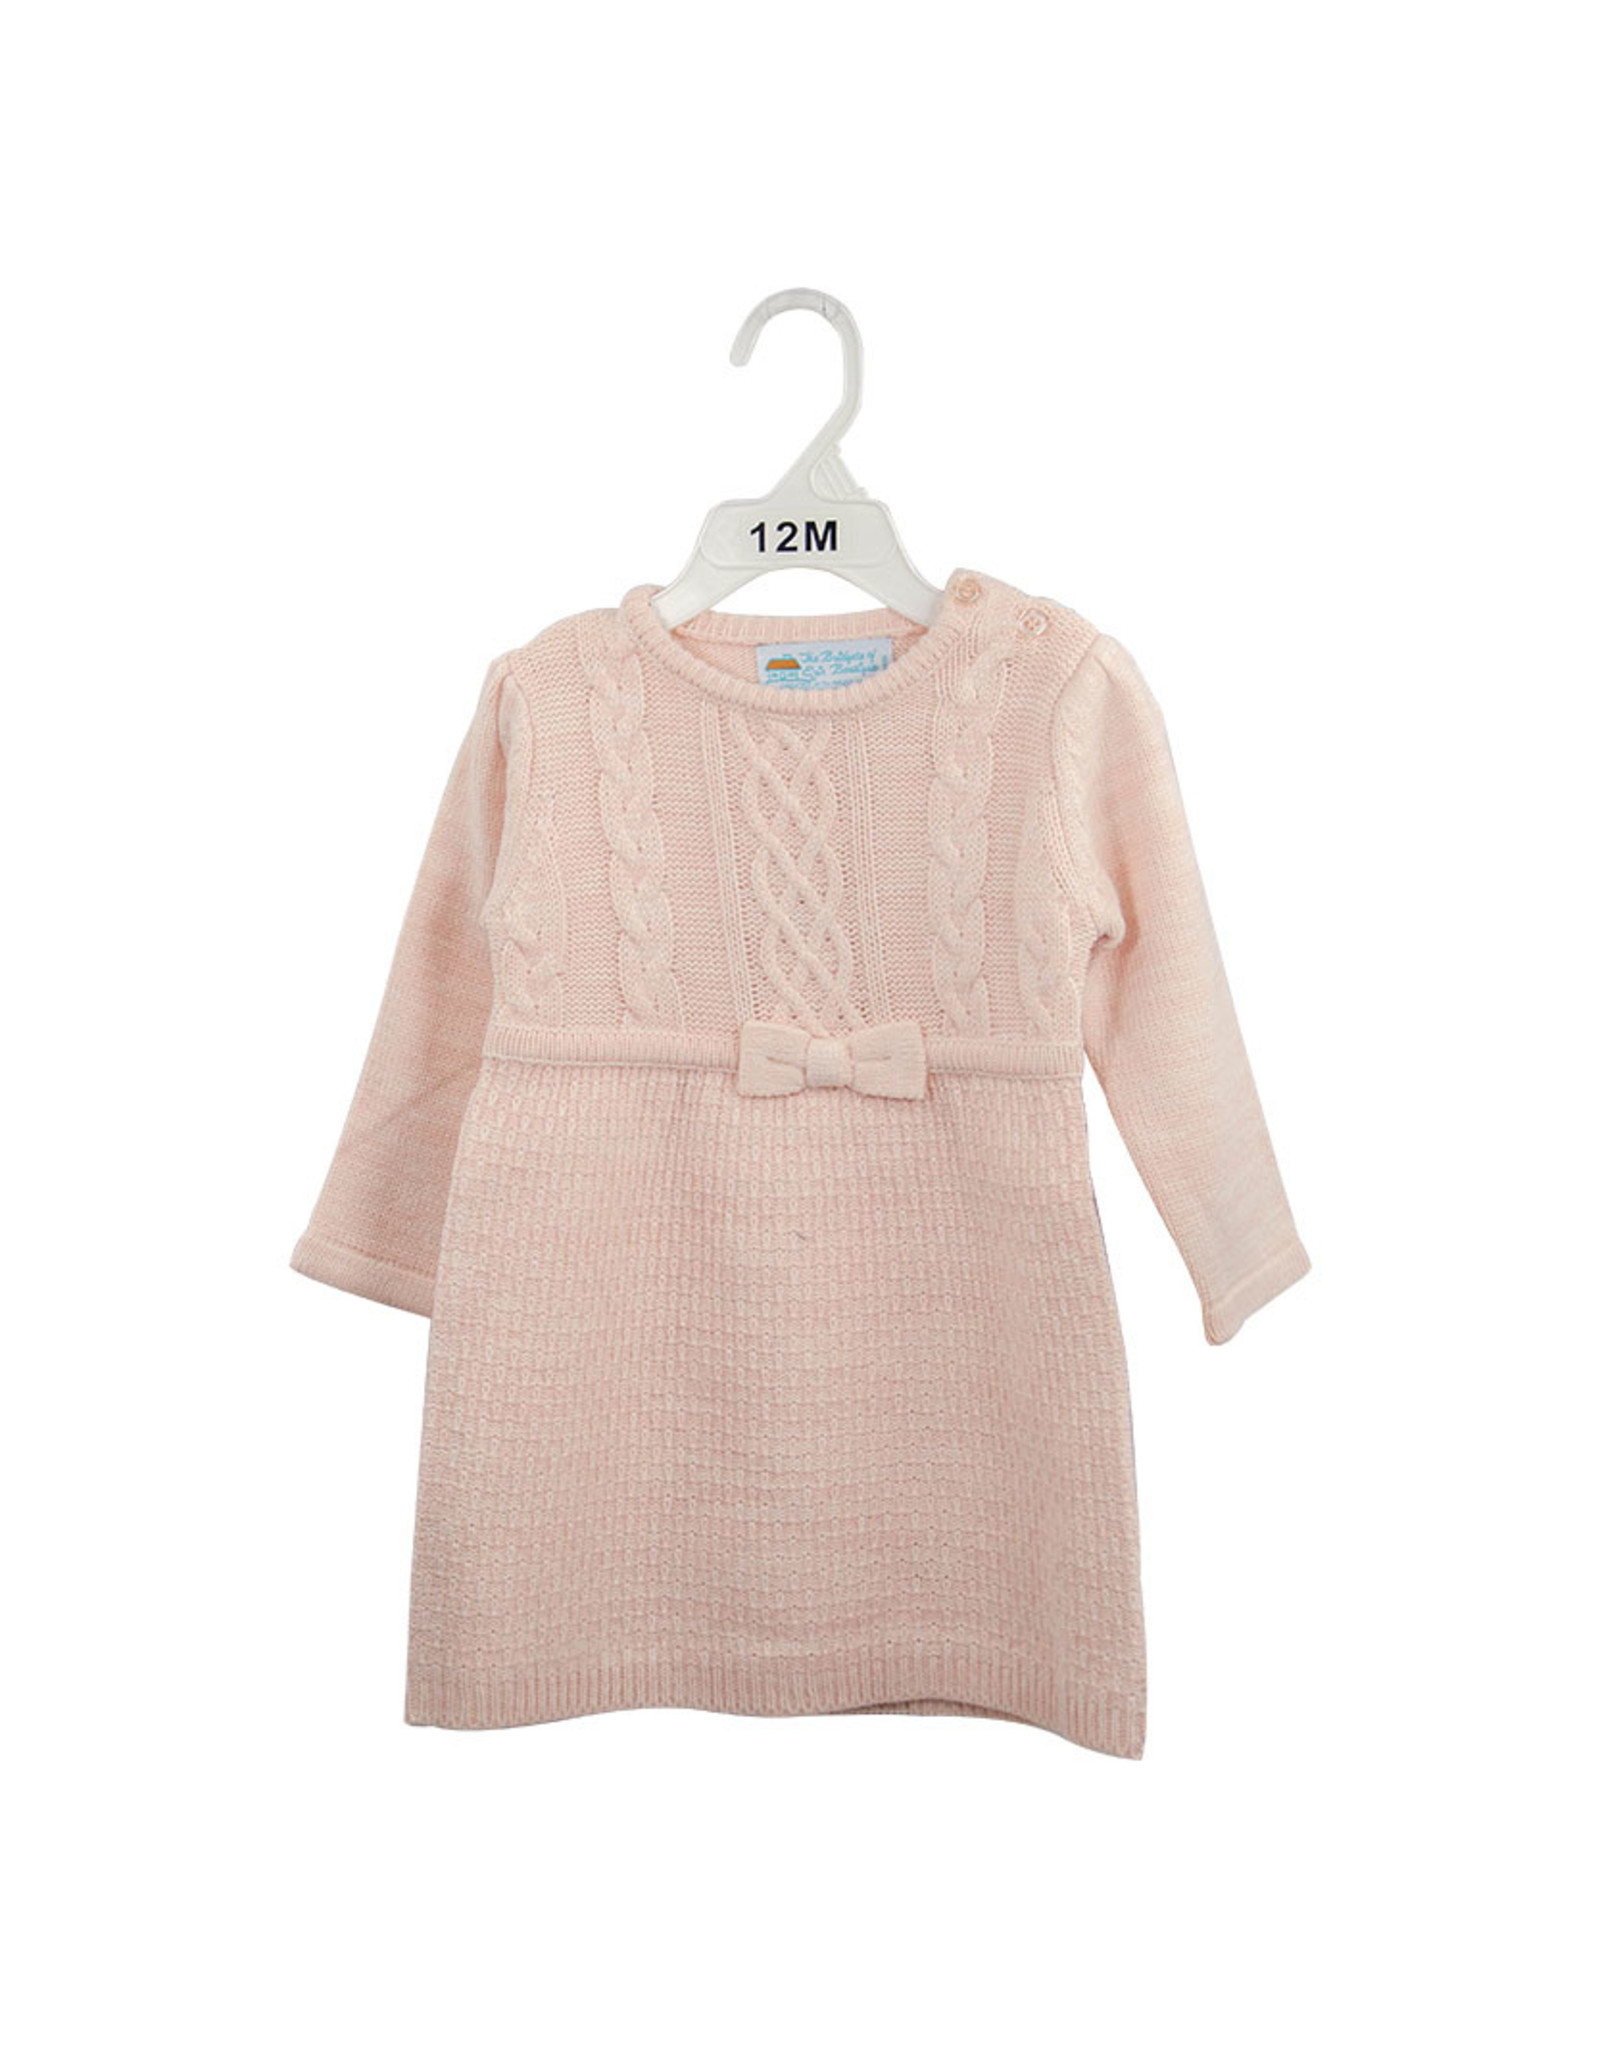 Bridgets of Erin Aran Dress Pretty in Pink 3T